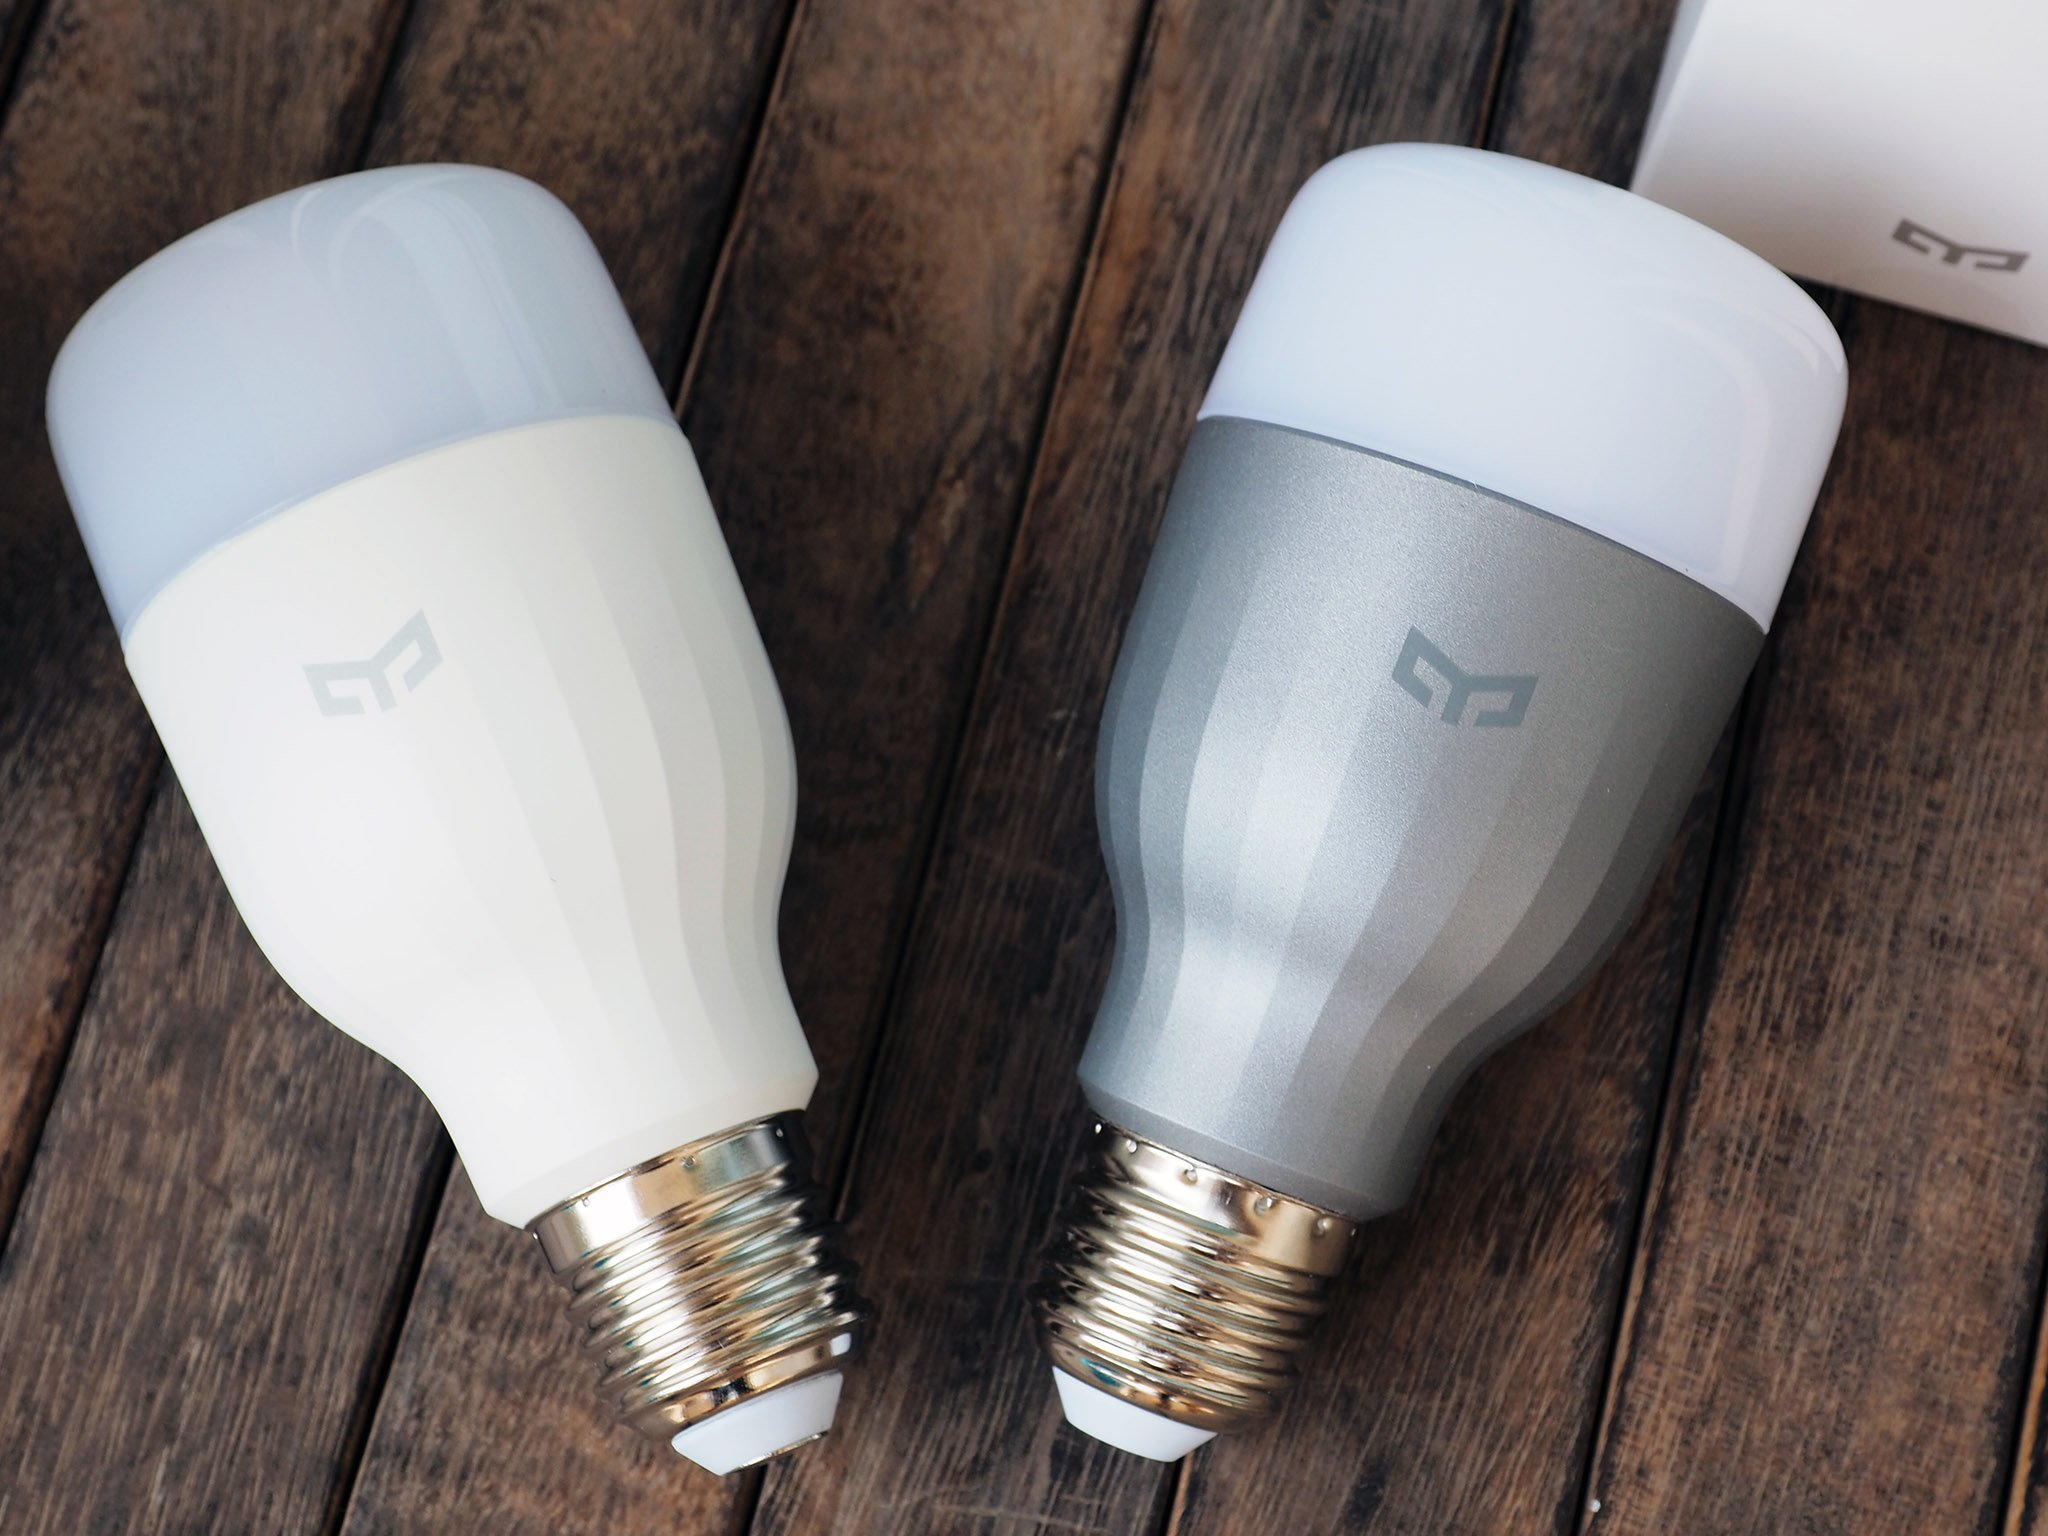 Philips Wireless Led Lights The Yeelight Led Bulb Is A Great Alternative To Philips Hue